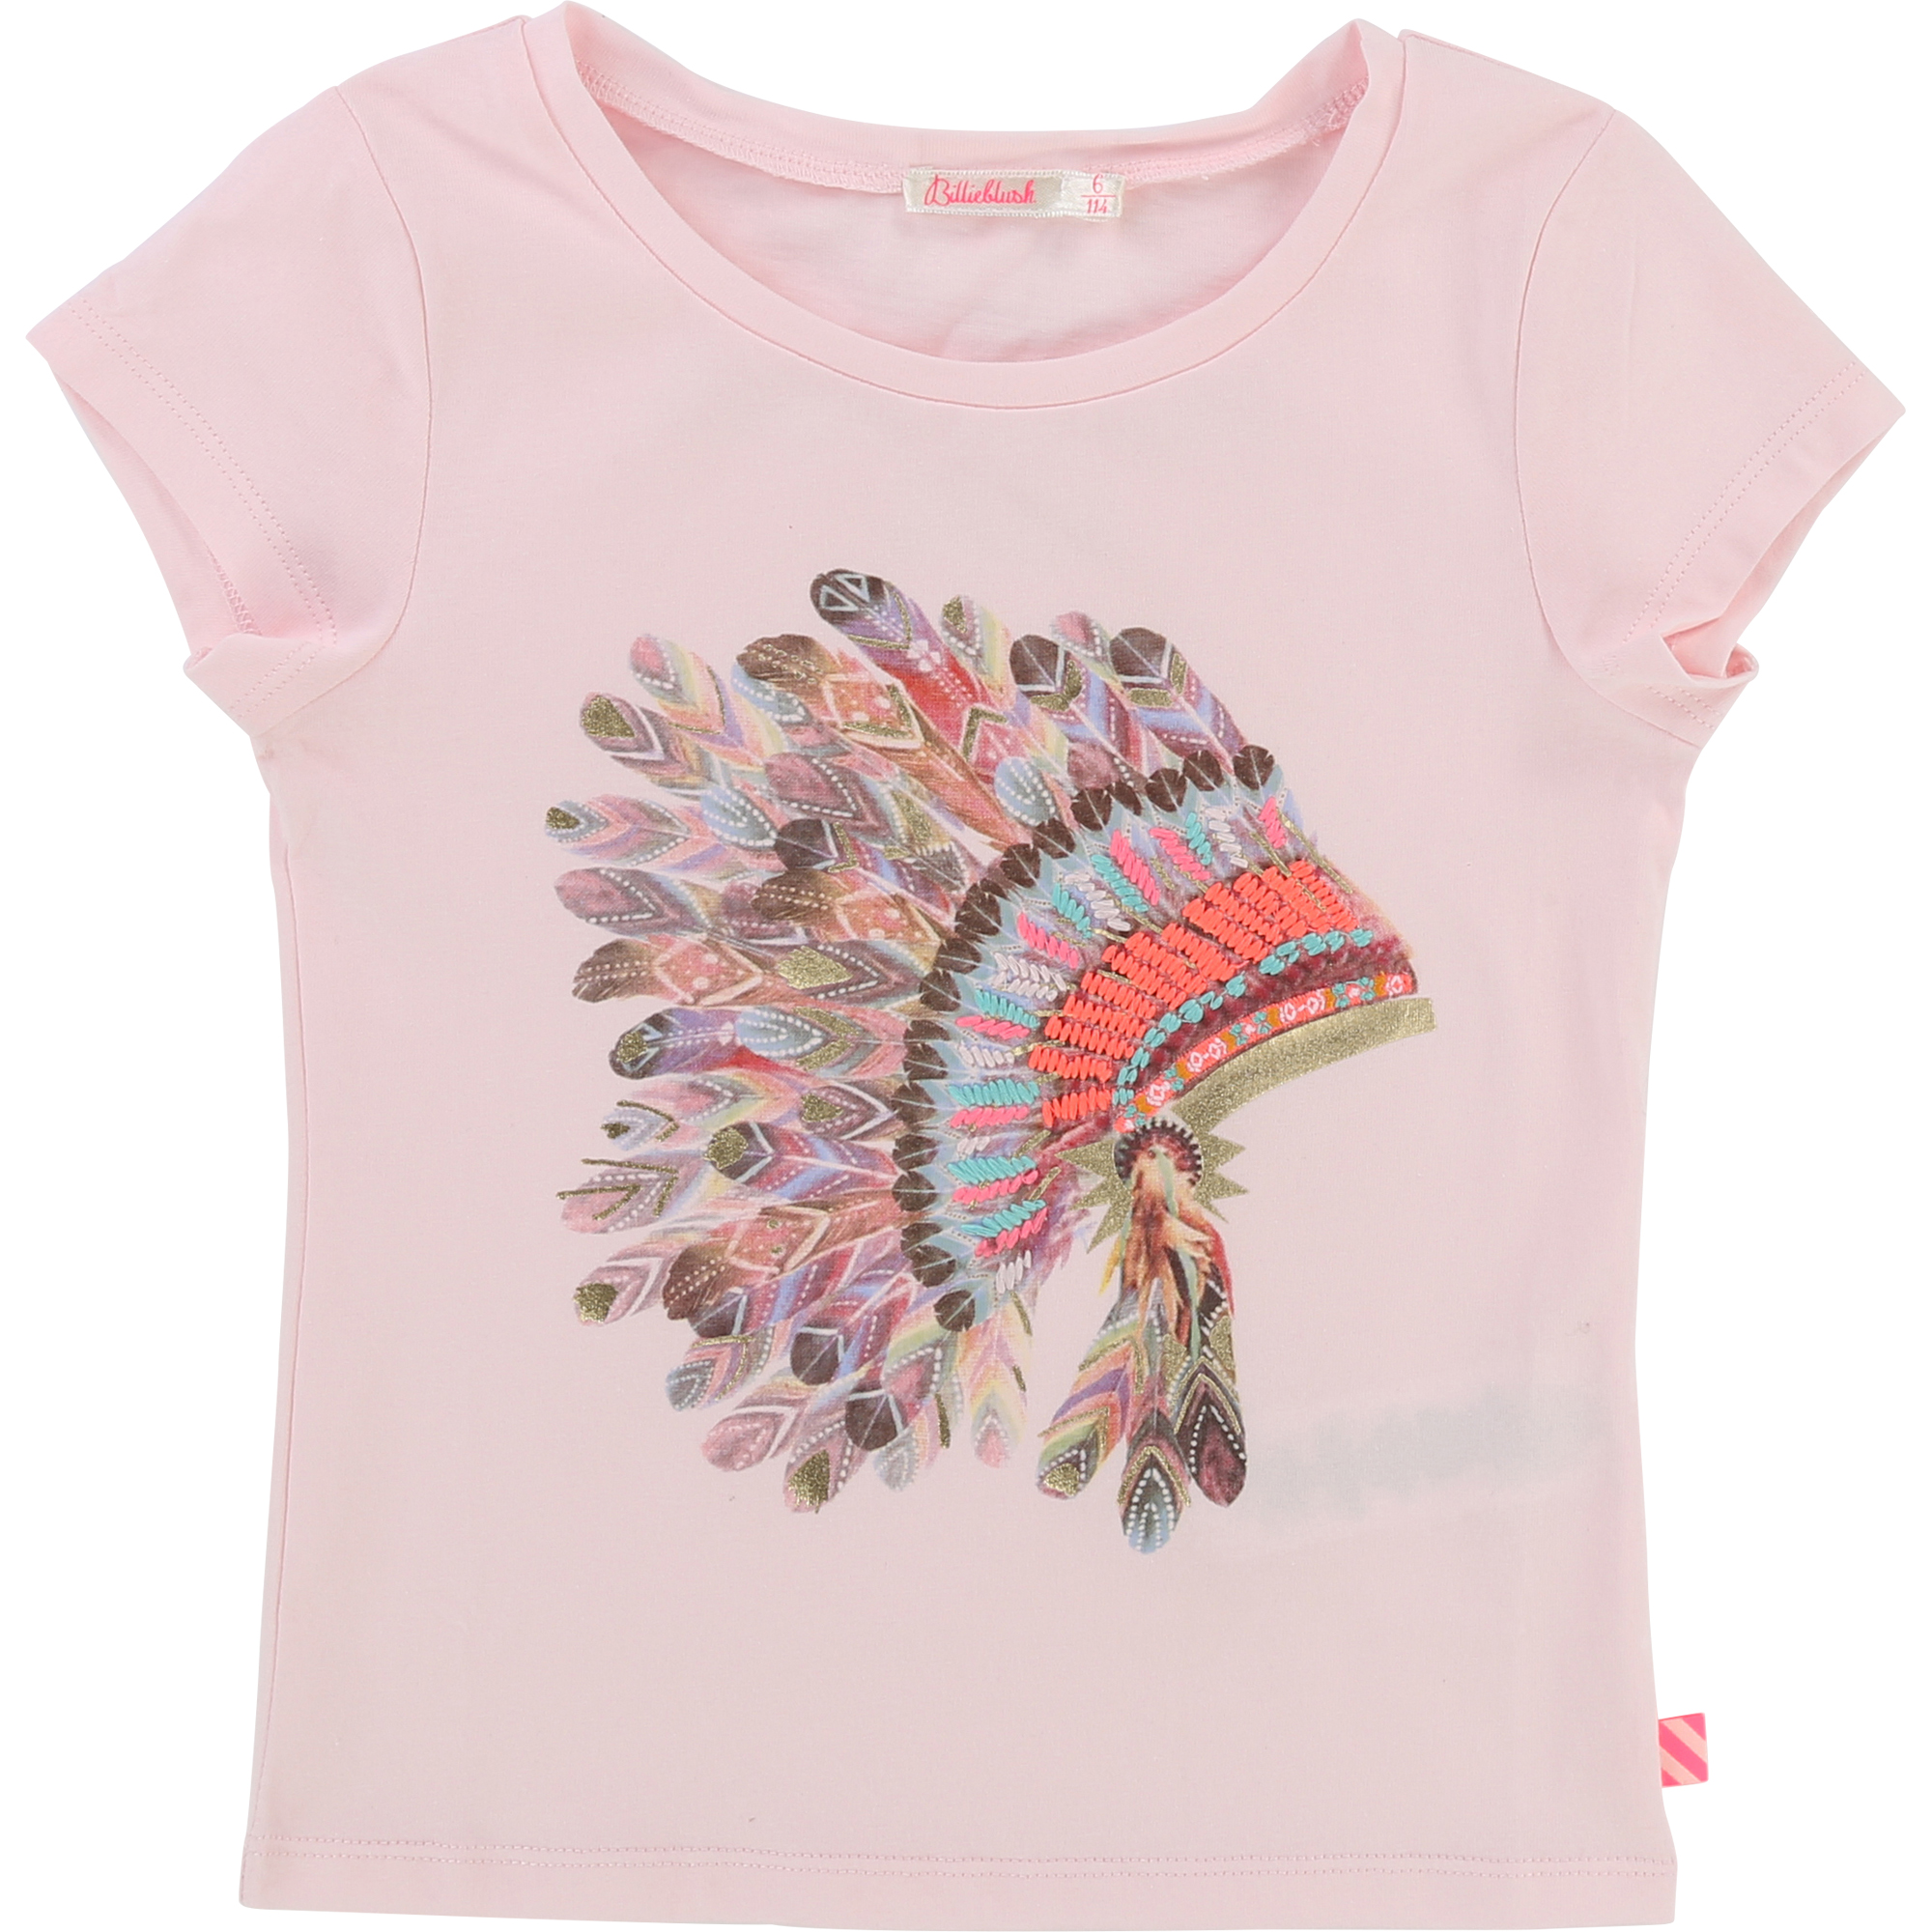 Billieblush  - PARTY PINK  PALE T-SHIRT - Clothing